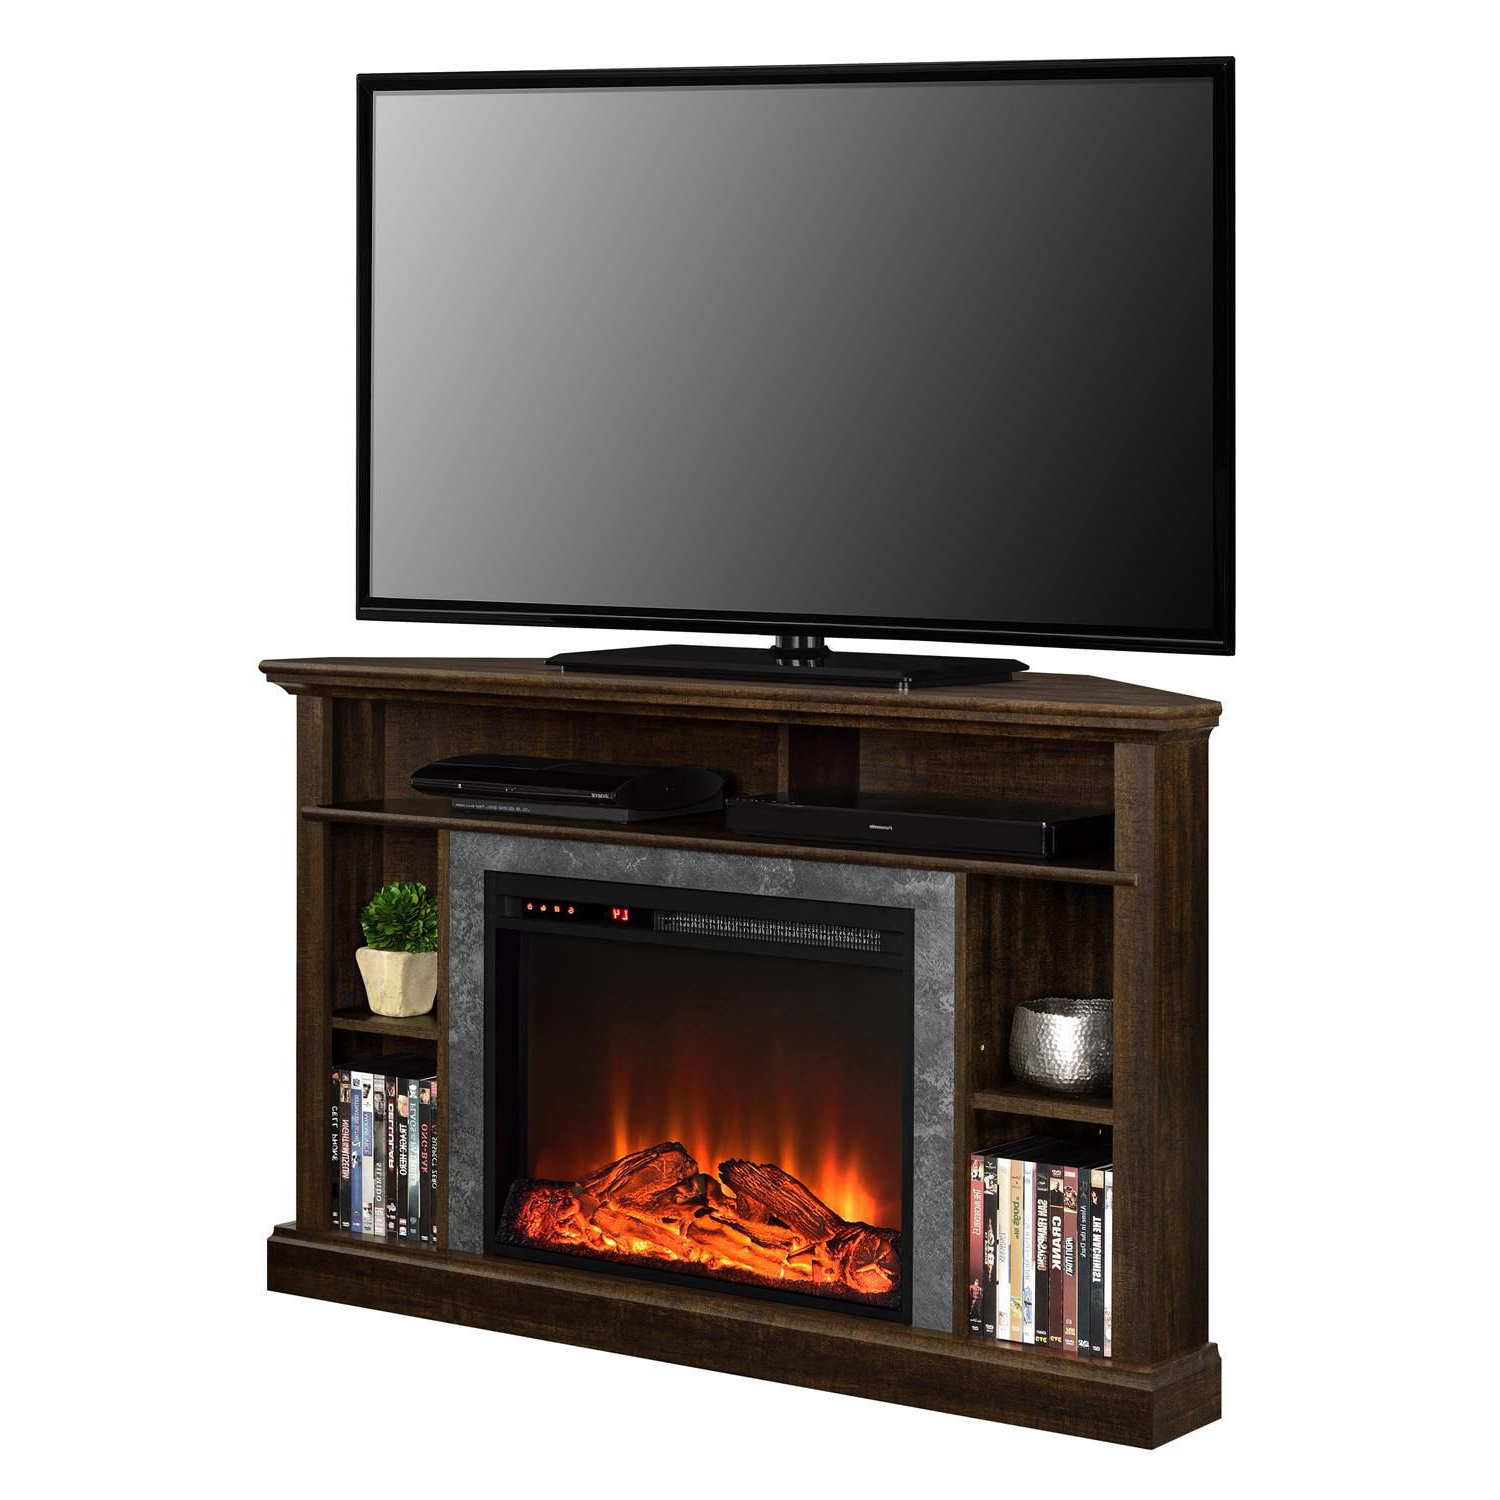 2018 50 Inch Fireplace Tv Stands With Dorel Overland Electric Fireplace Corner Tv Stand (View 1 of 20)